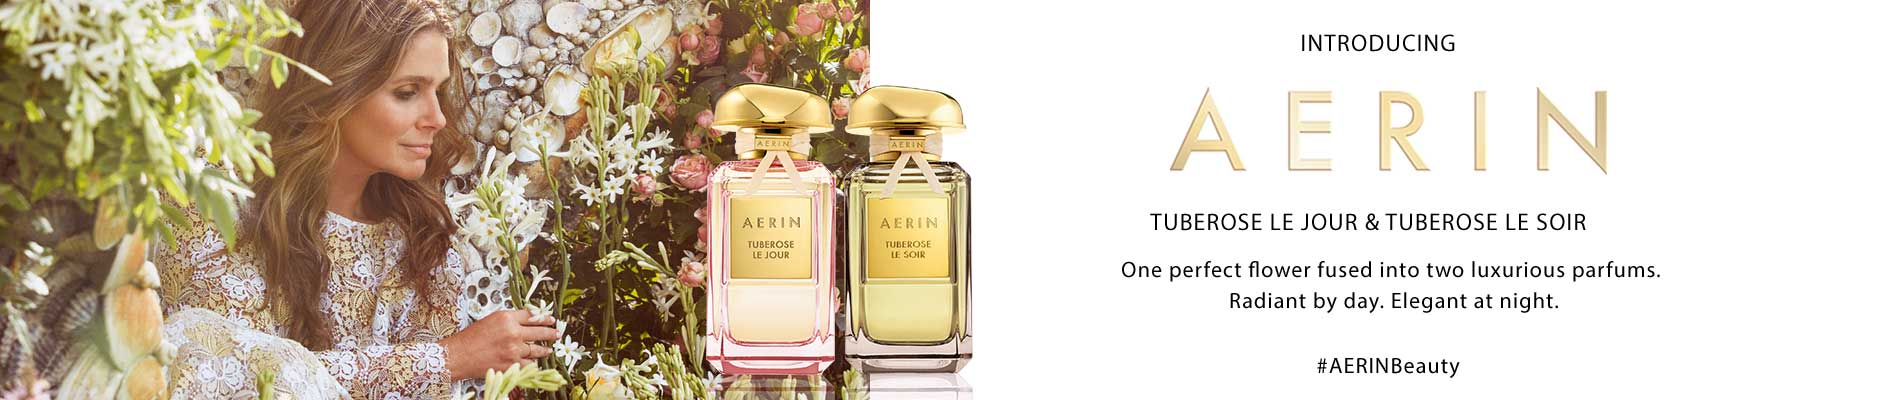 Introducing aerin - tuberose le jour & tuberose le soir, one perfect flower fused into two luxurious parfums. Radiant by day. Elegant at night. #aerinbeauty